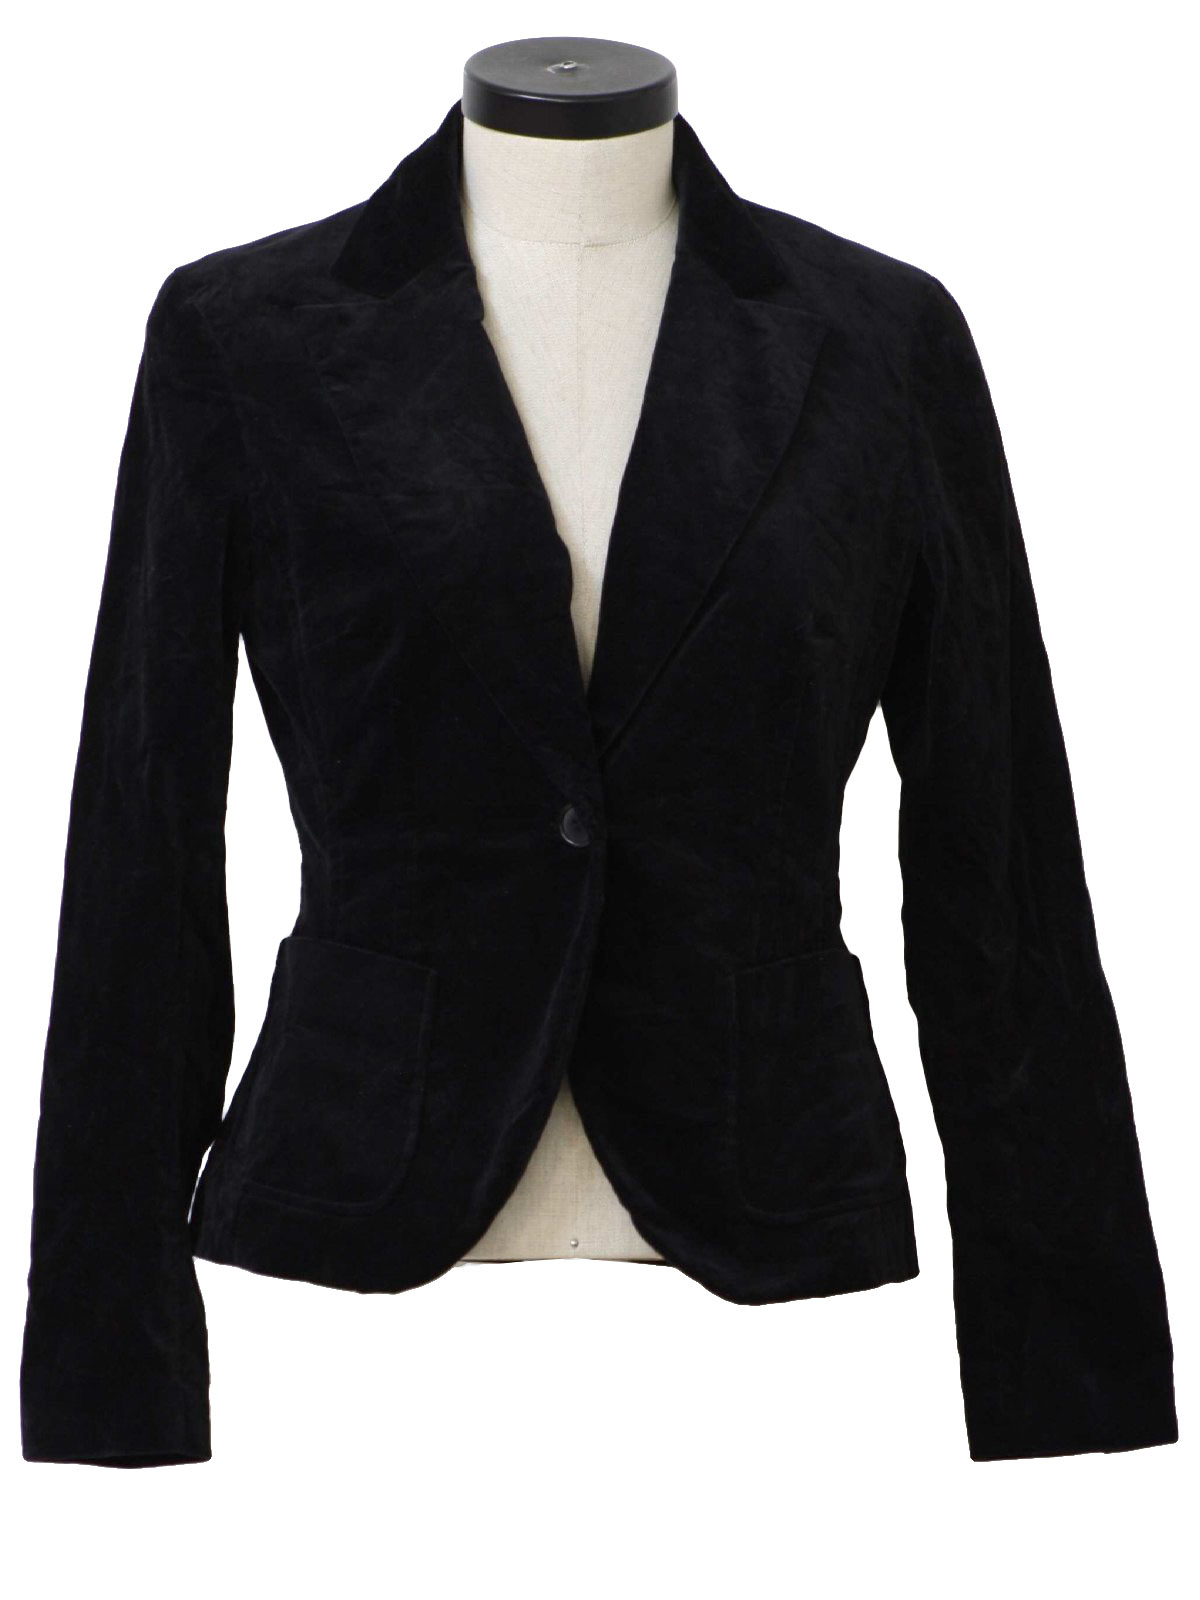 1990's New York Womens Velvet Blazer Jacket $29.00 Not in stock. Item No. 187959